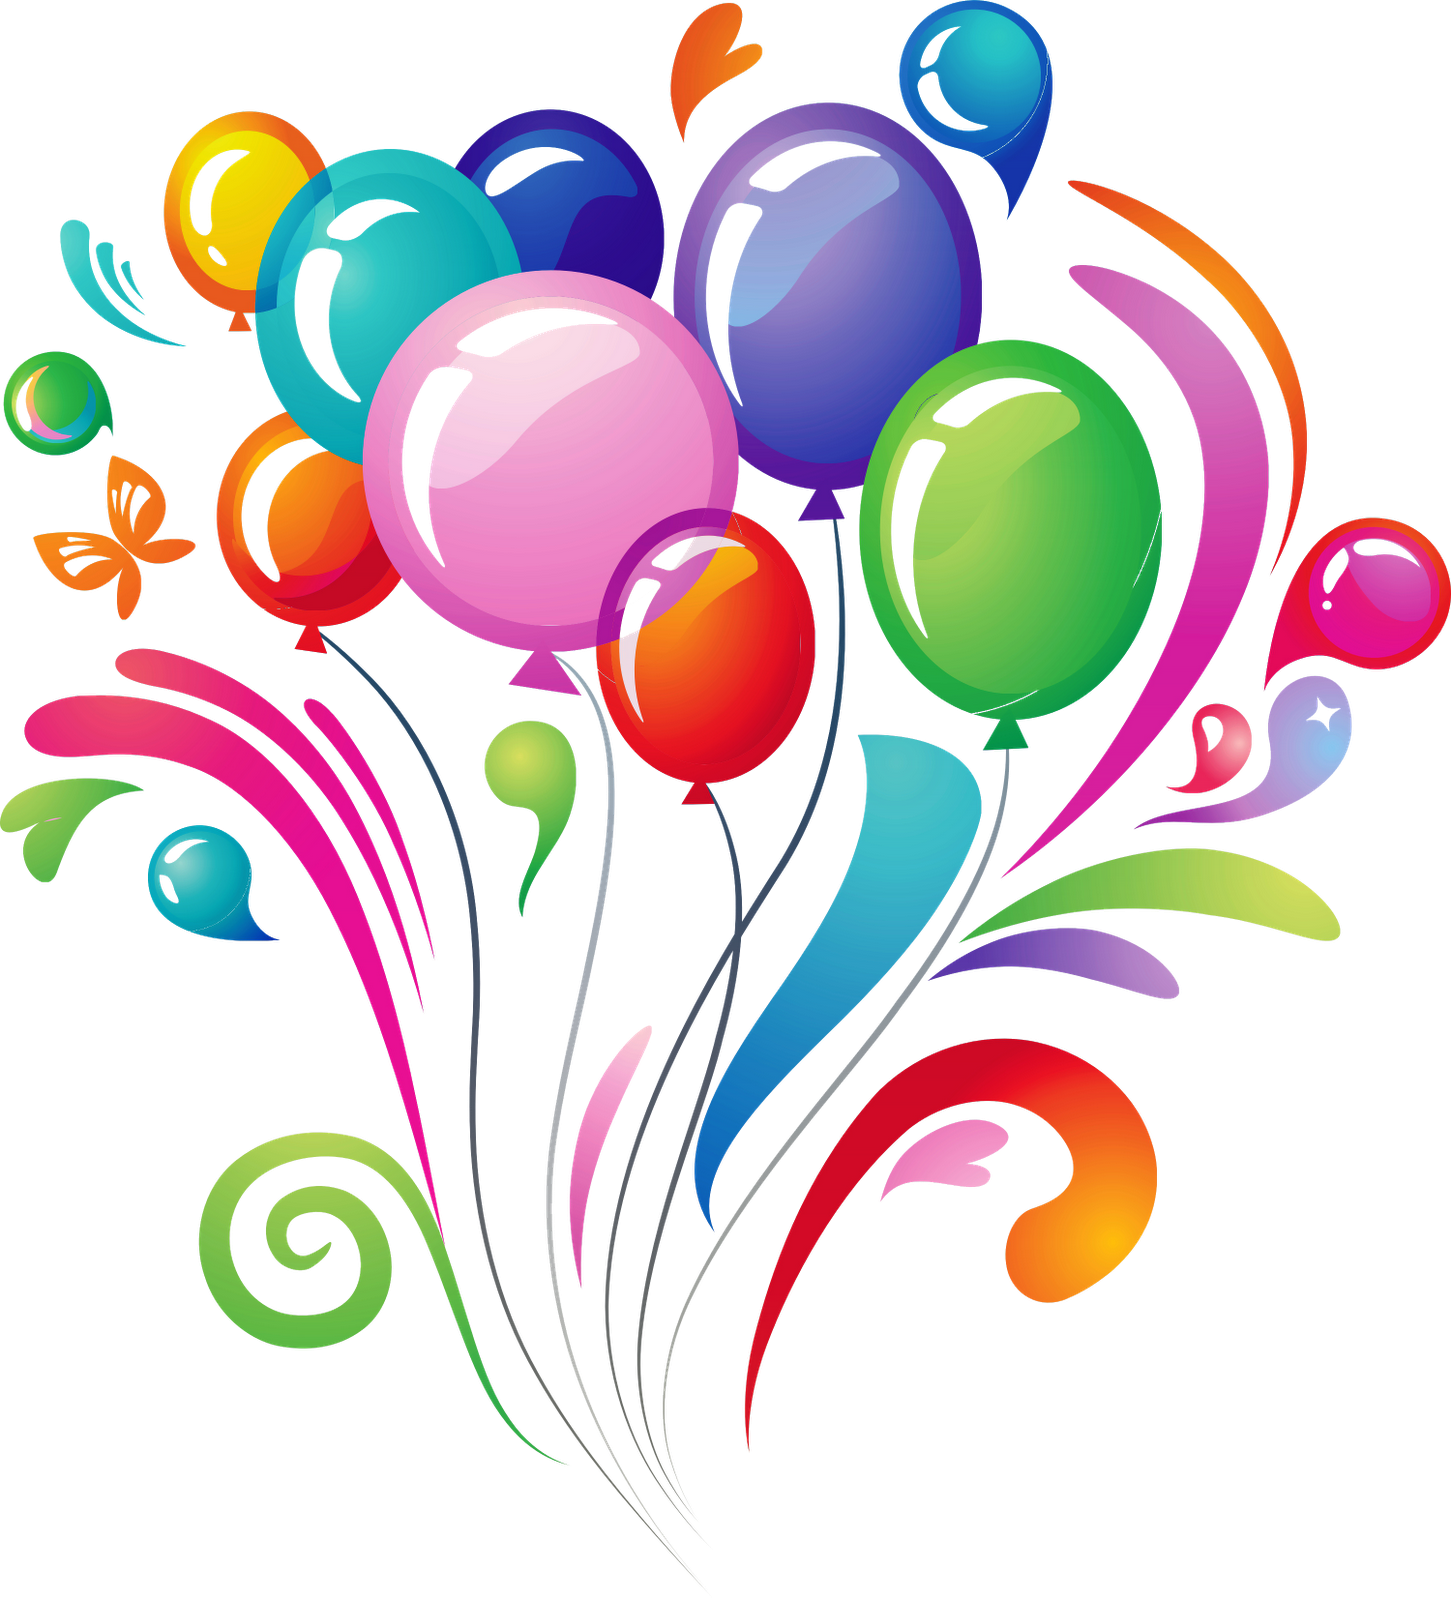 The fizz head blog. Png happy birthday svg royalty free